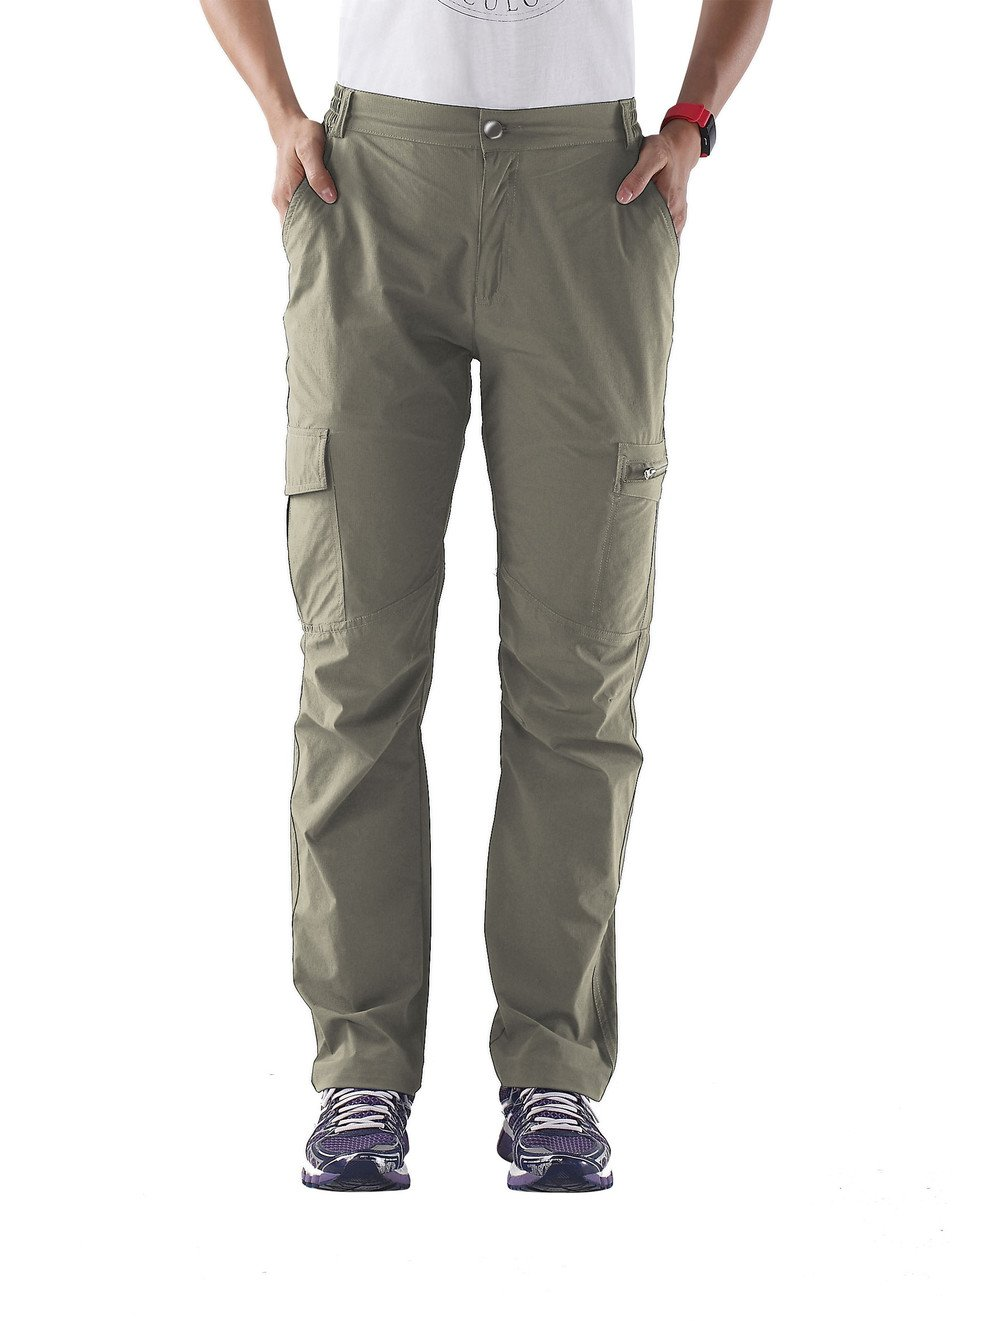 Nonwe Women's Quick Dry Breathable Hiking Camping Cargo Trousers Khaki XXL/30.5'' Inseam